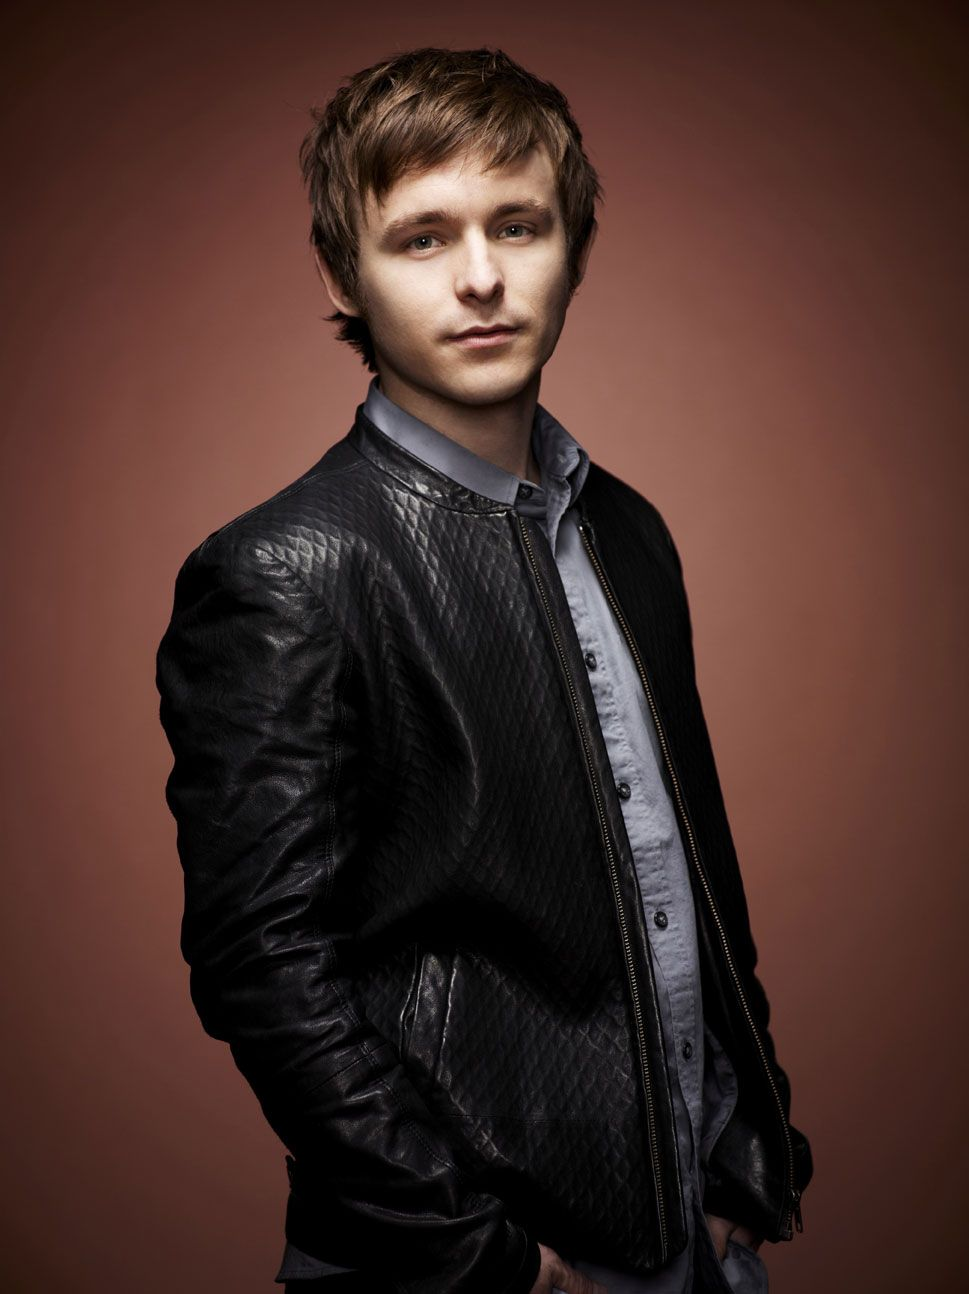 marshall allman height